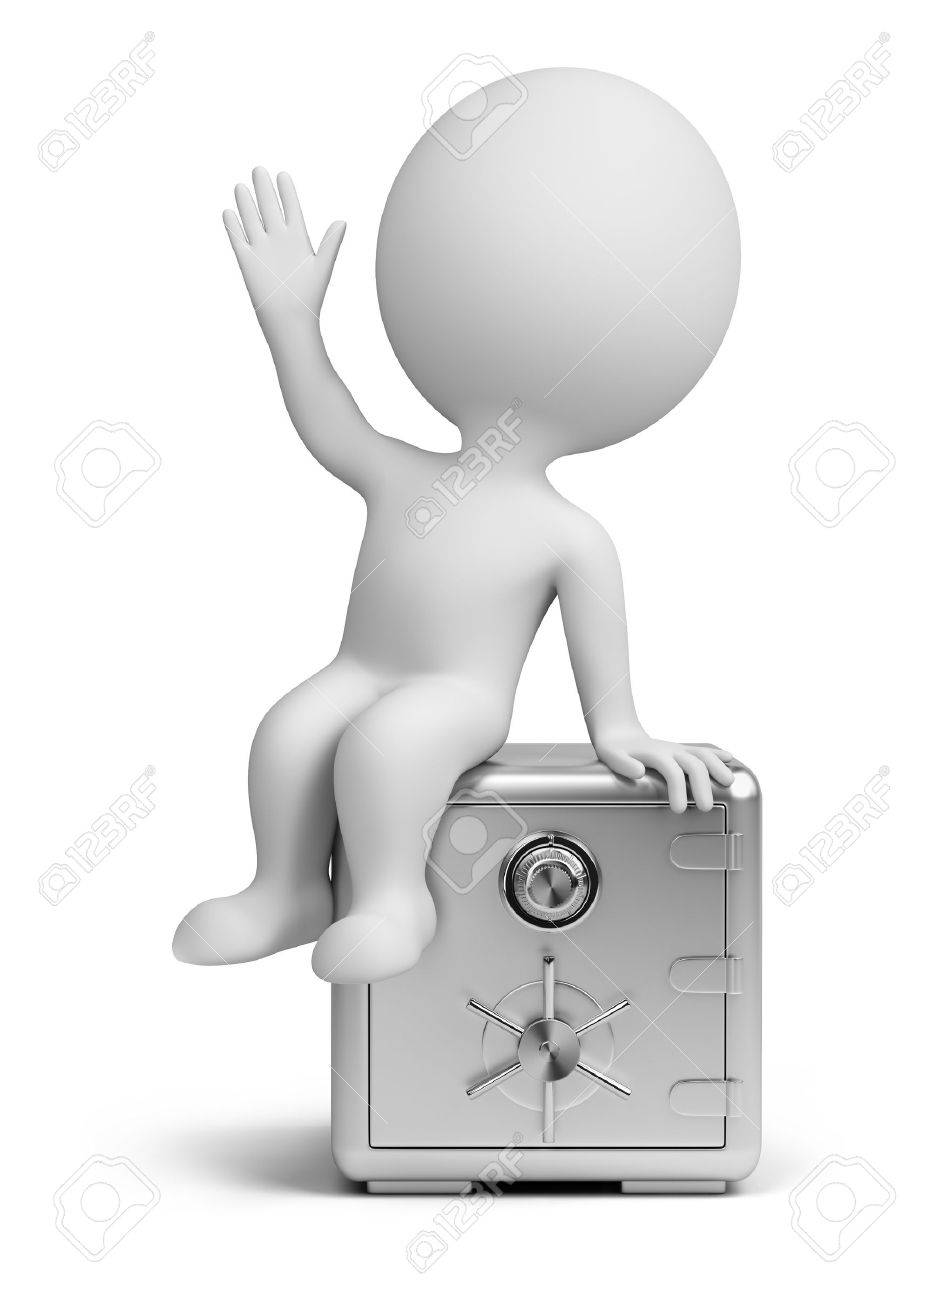 3d small person sitting on the steel safe. 3d image. Isolated white background. Stock Photo - 9920092